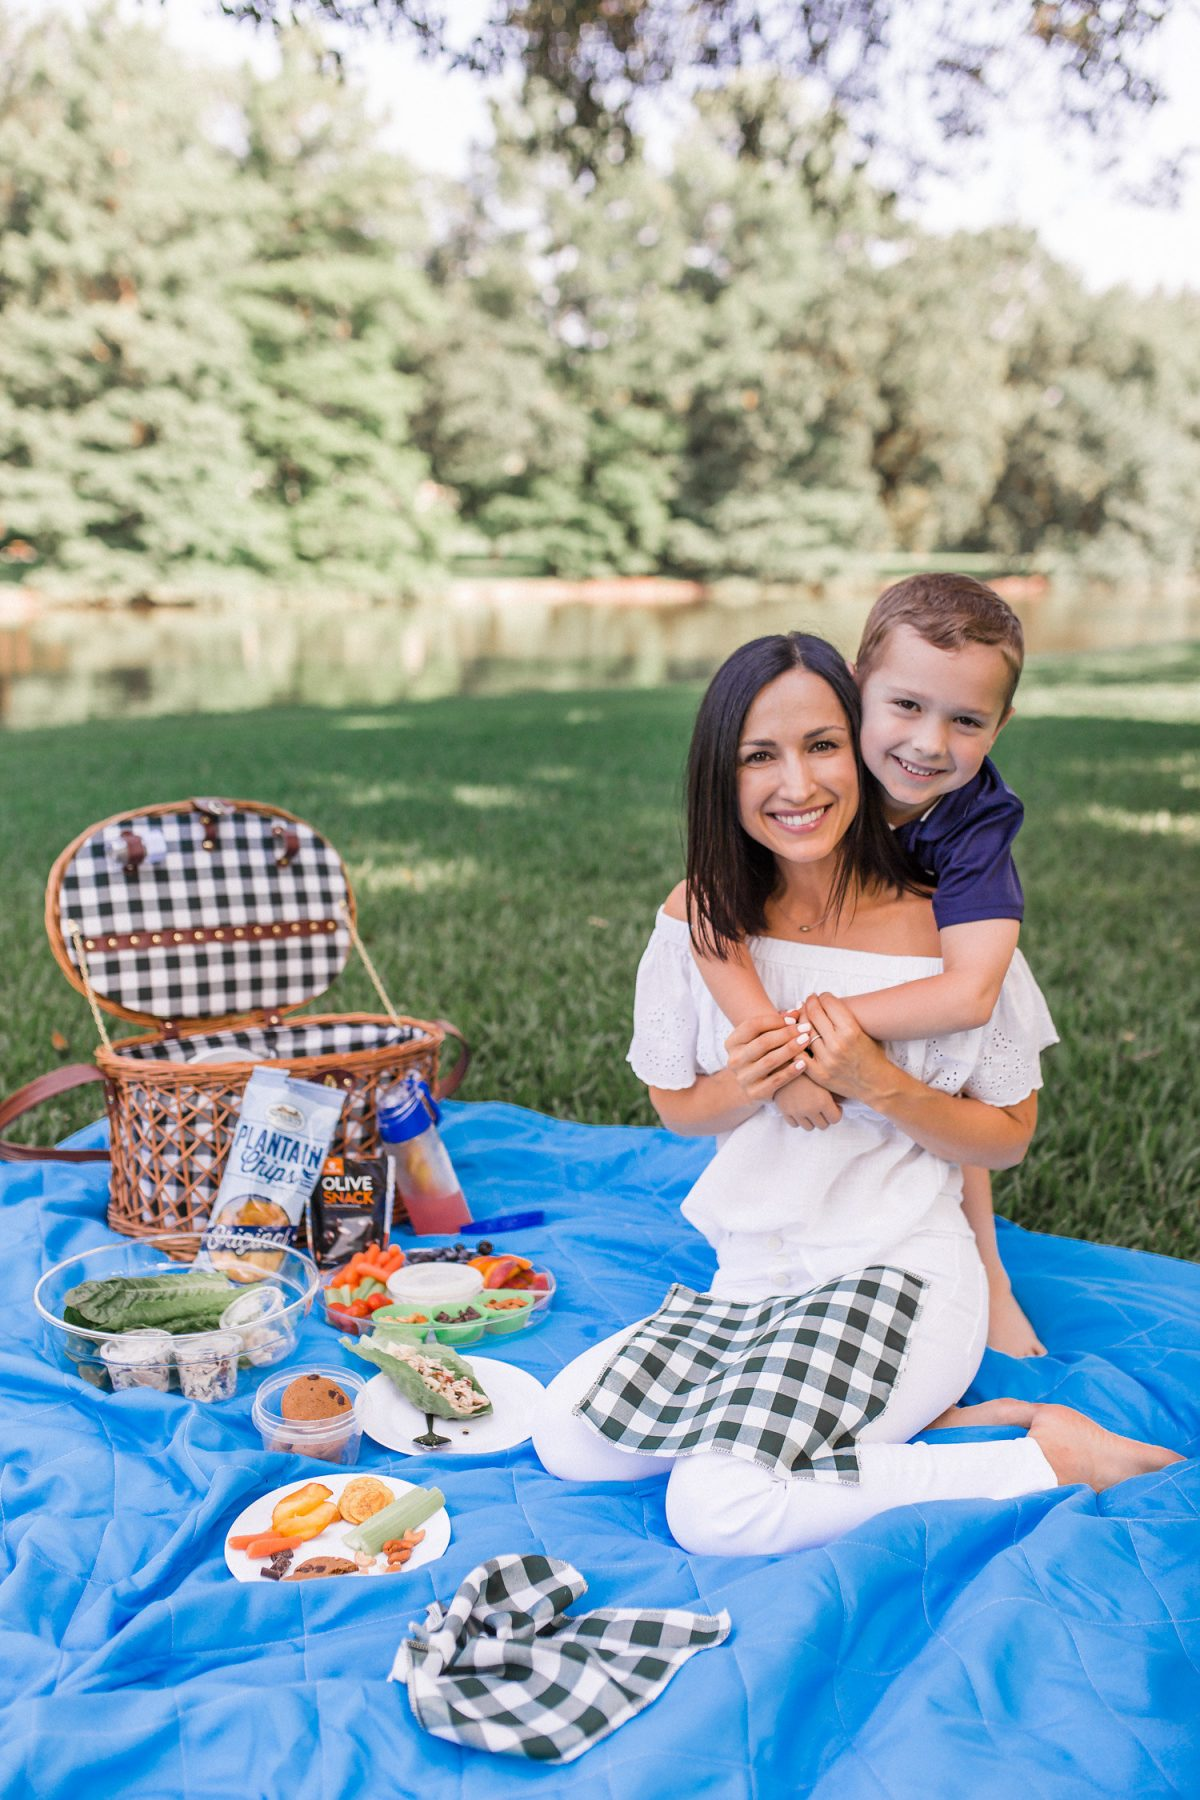 Packing a healthy picnic basket is easier than you think! I include several of our favorite Whole30 and Paleo foods that are delicious and family friendly! This picnic basket is a great item to have at home or to give as a gift!